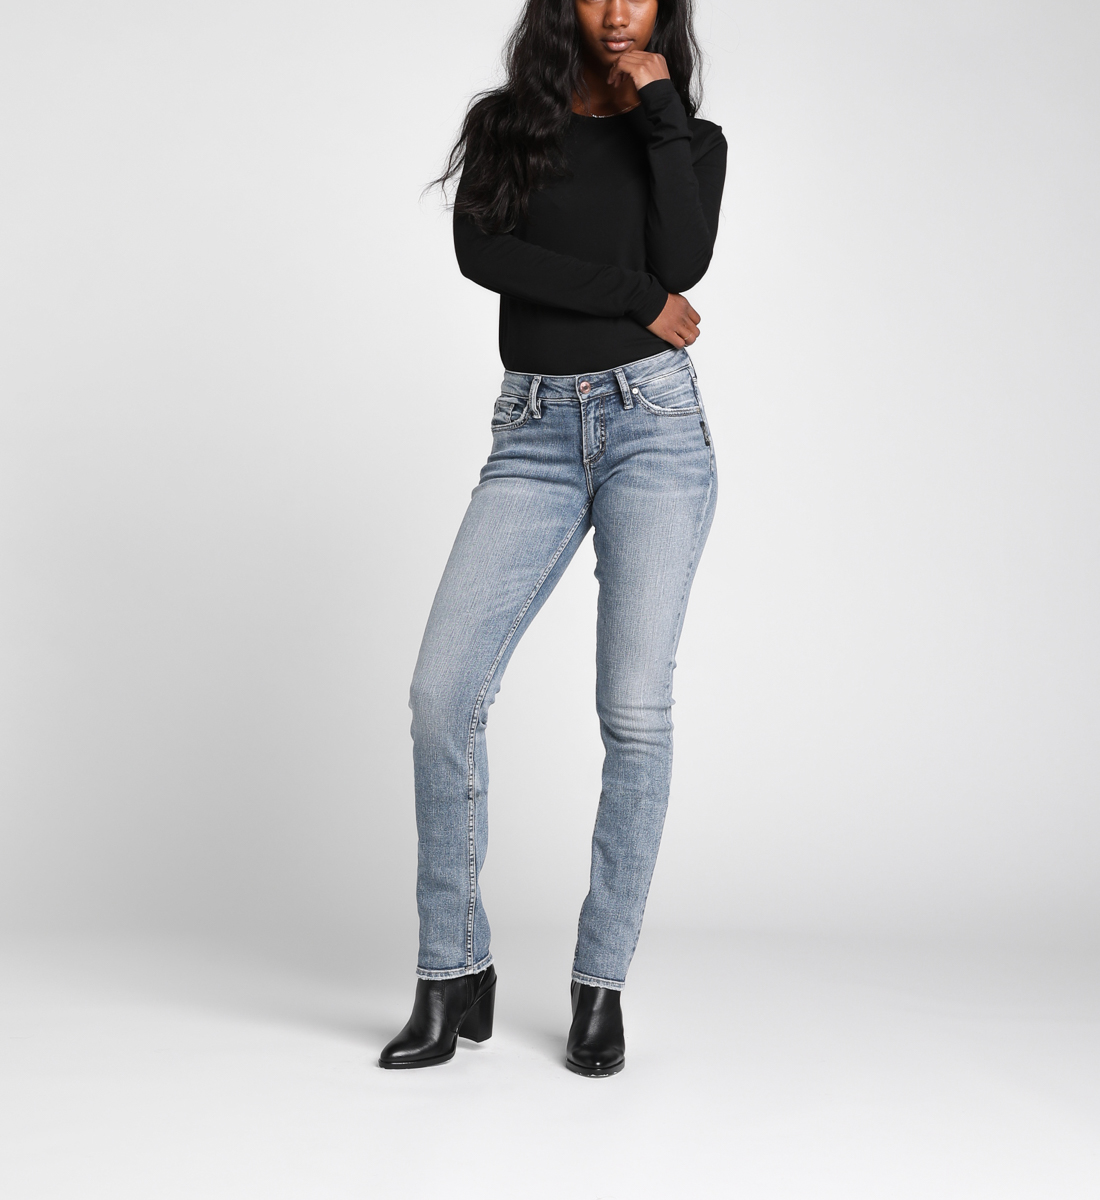 Silver Jeans Suki Mid-Rise Curvy Straight Leg Jeans